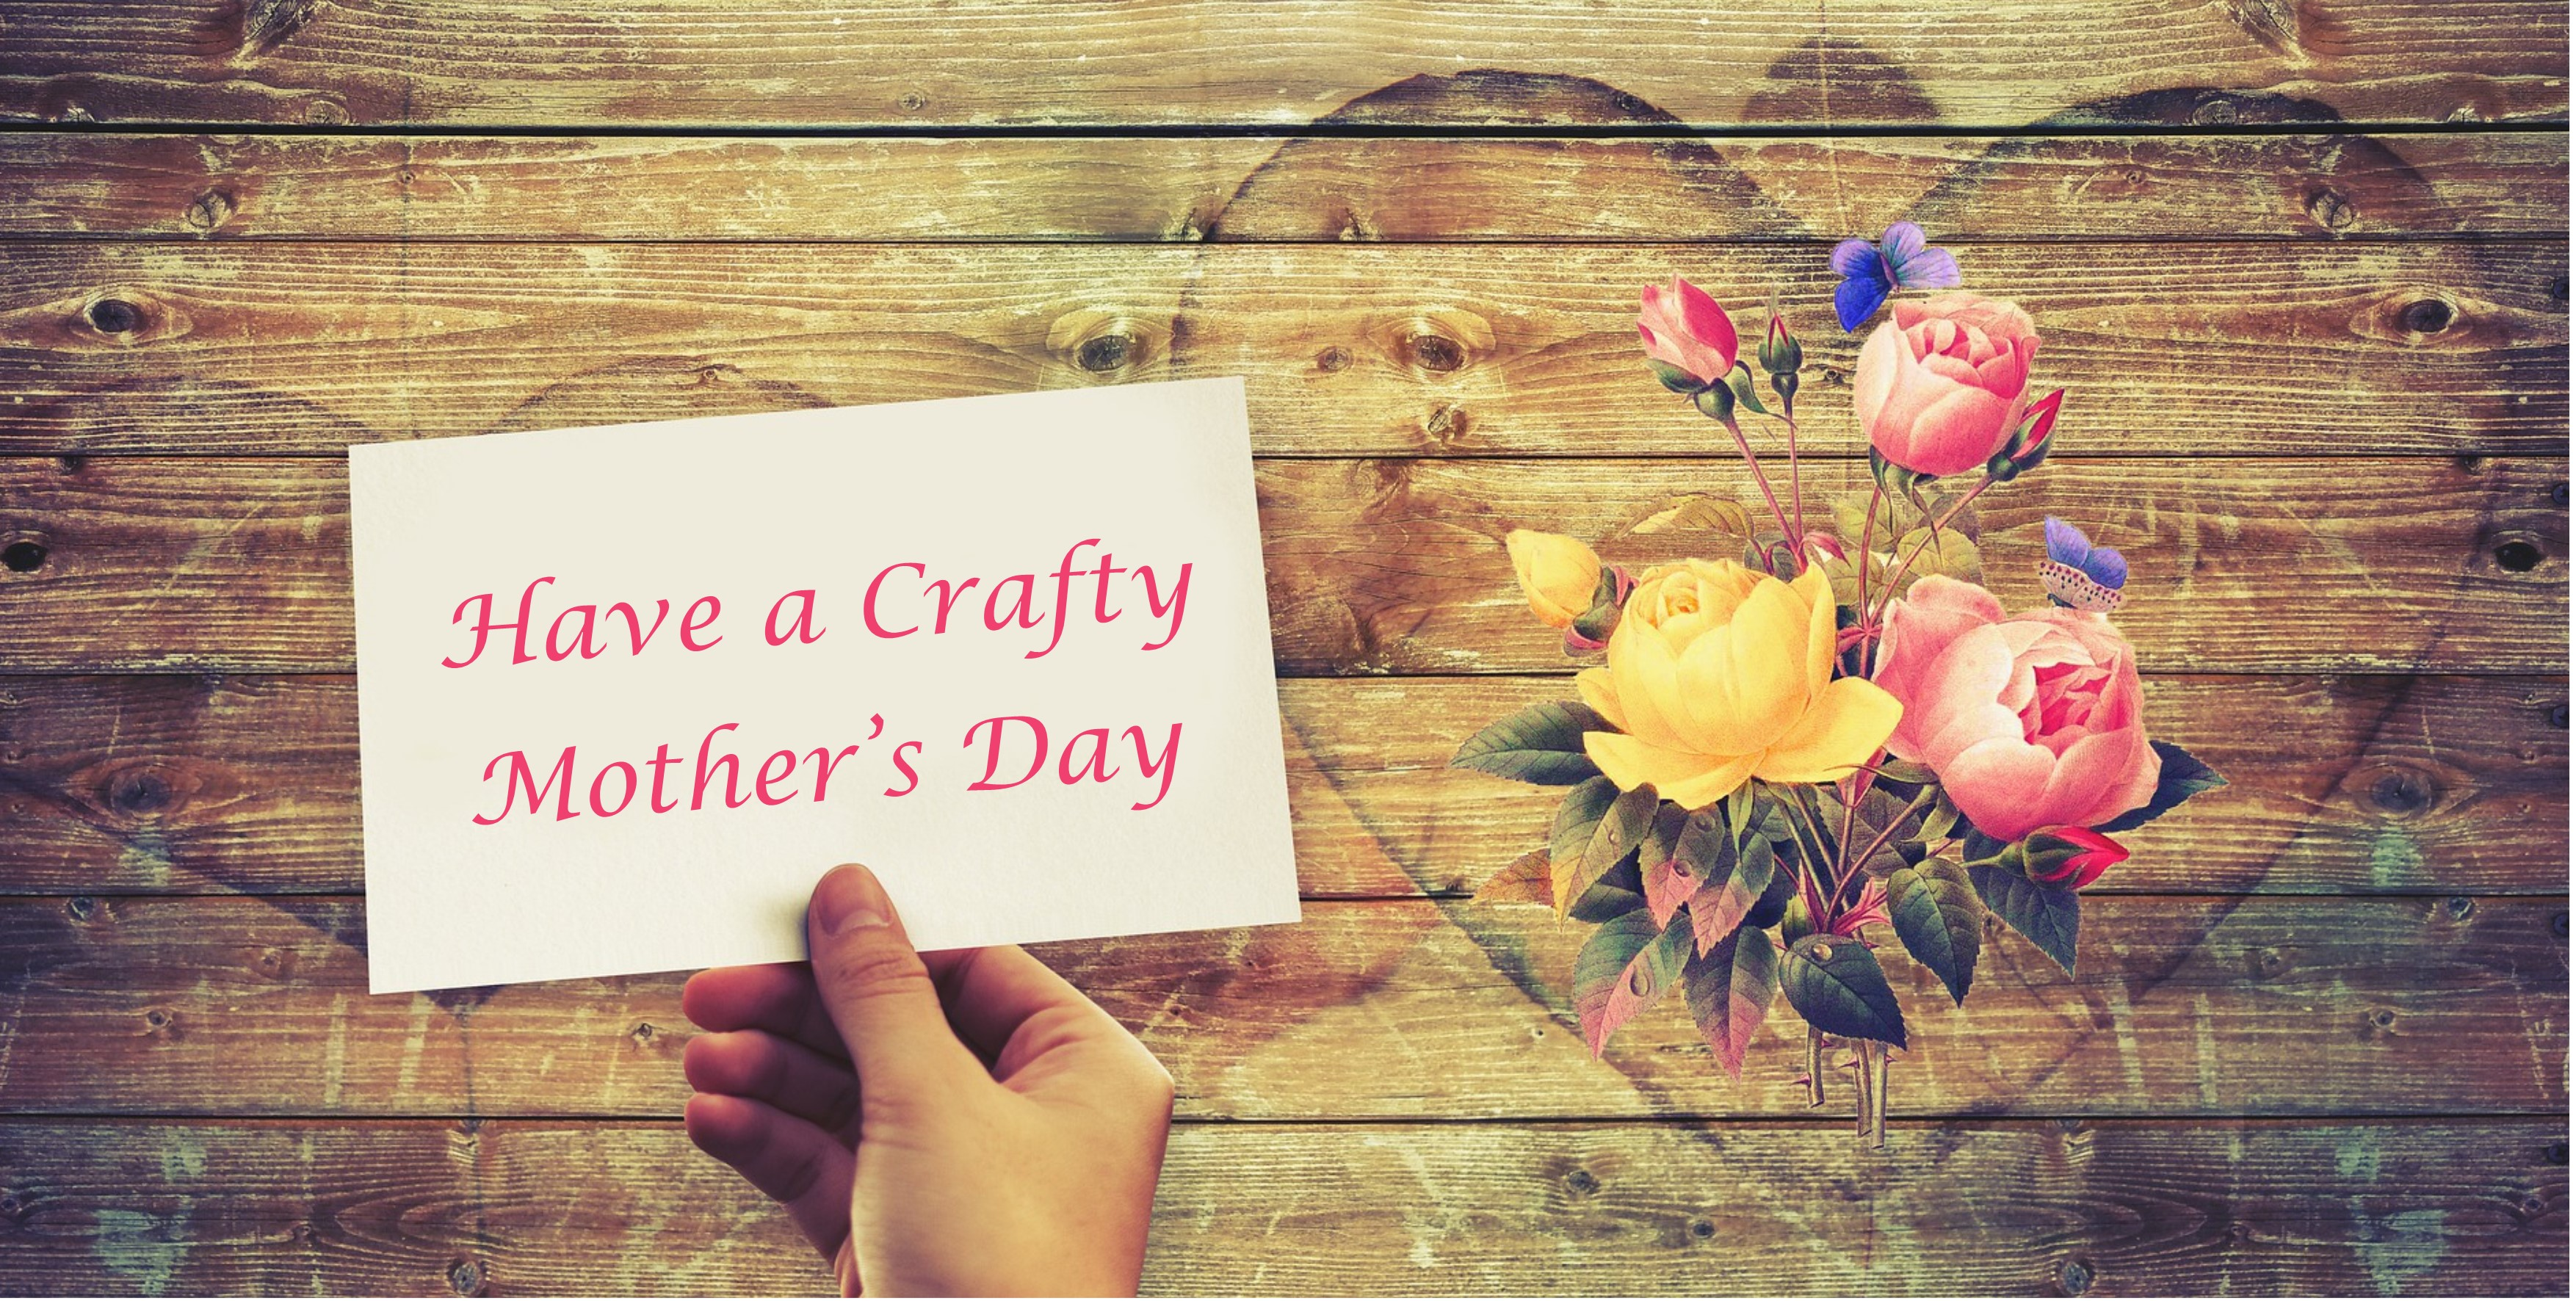 Hand holding a card with the wording Have a Crafty Mother's Day in pink writing, above a wooden background with a rose bouquet in a heart shape to the right